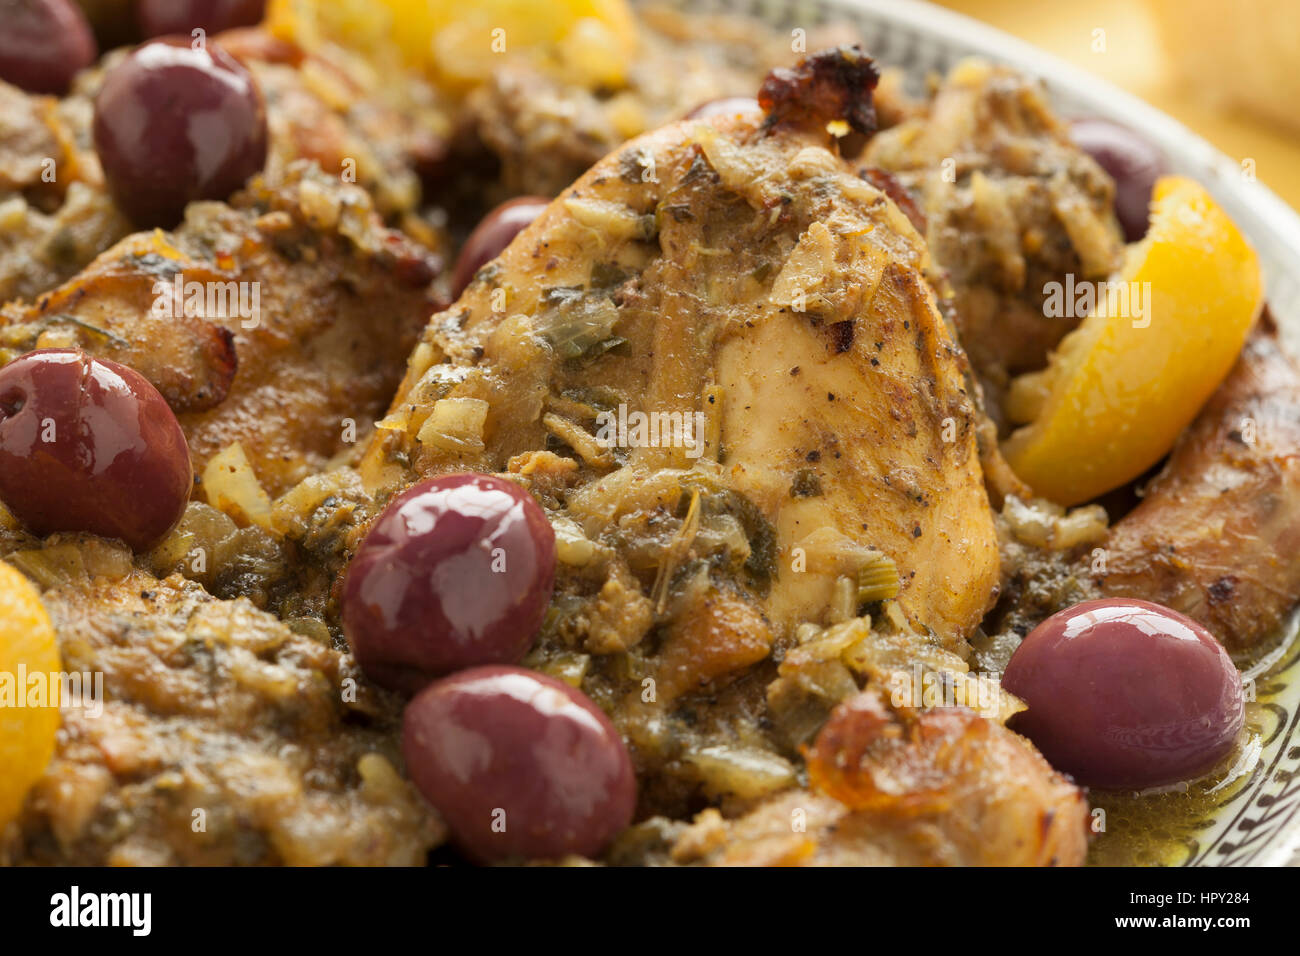 Moroccan dish with chicken, olives and preserved lemon close up - Stock Image